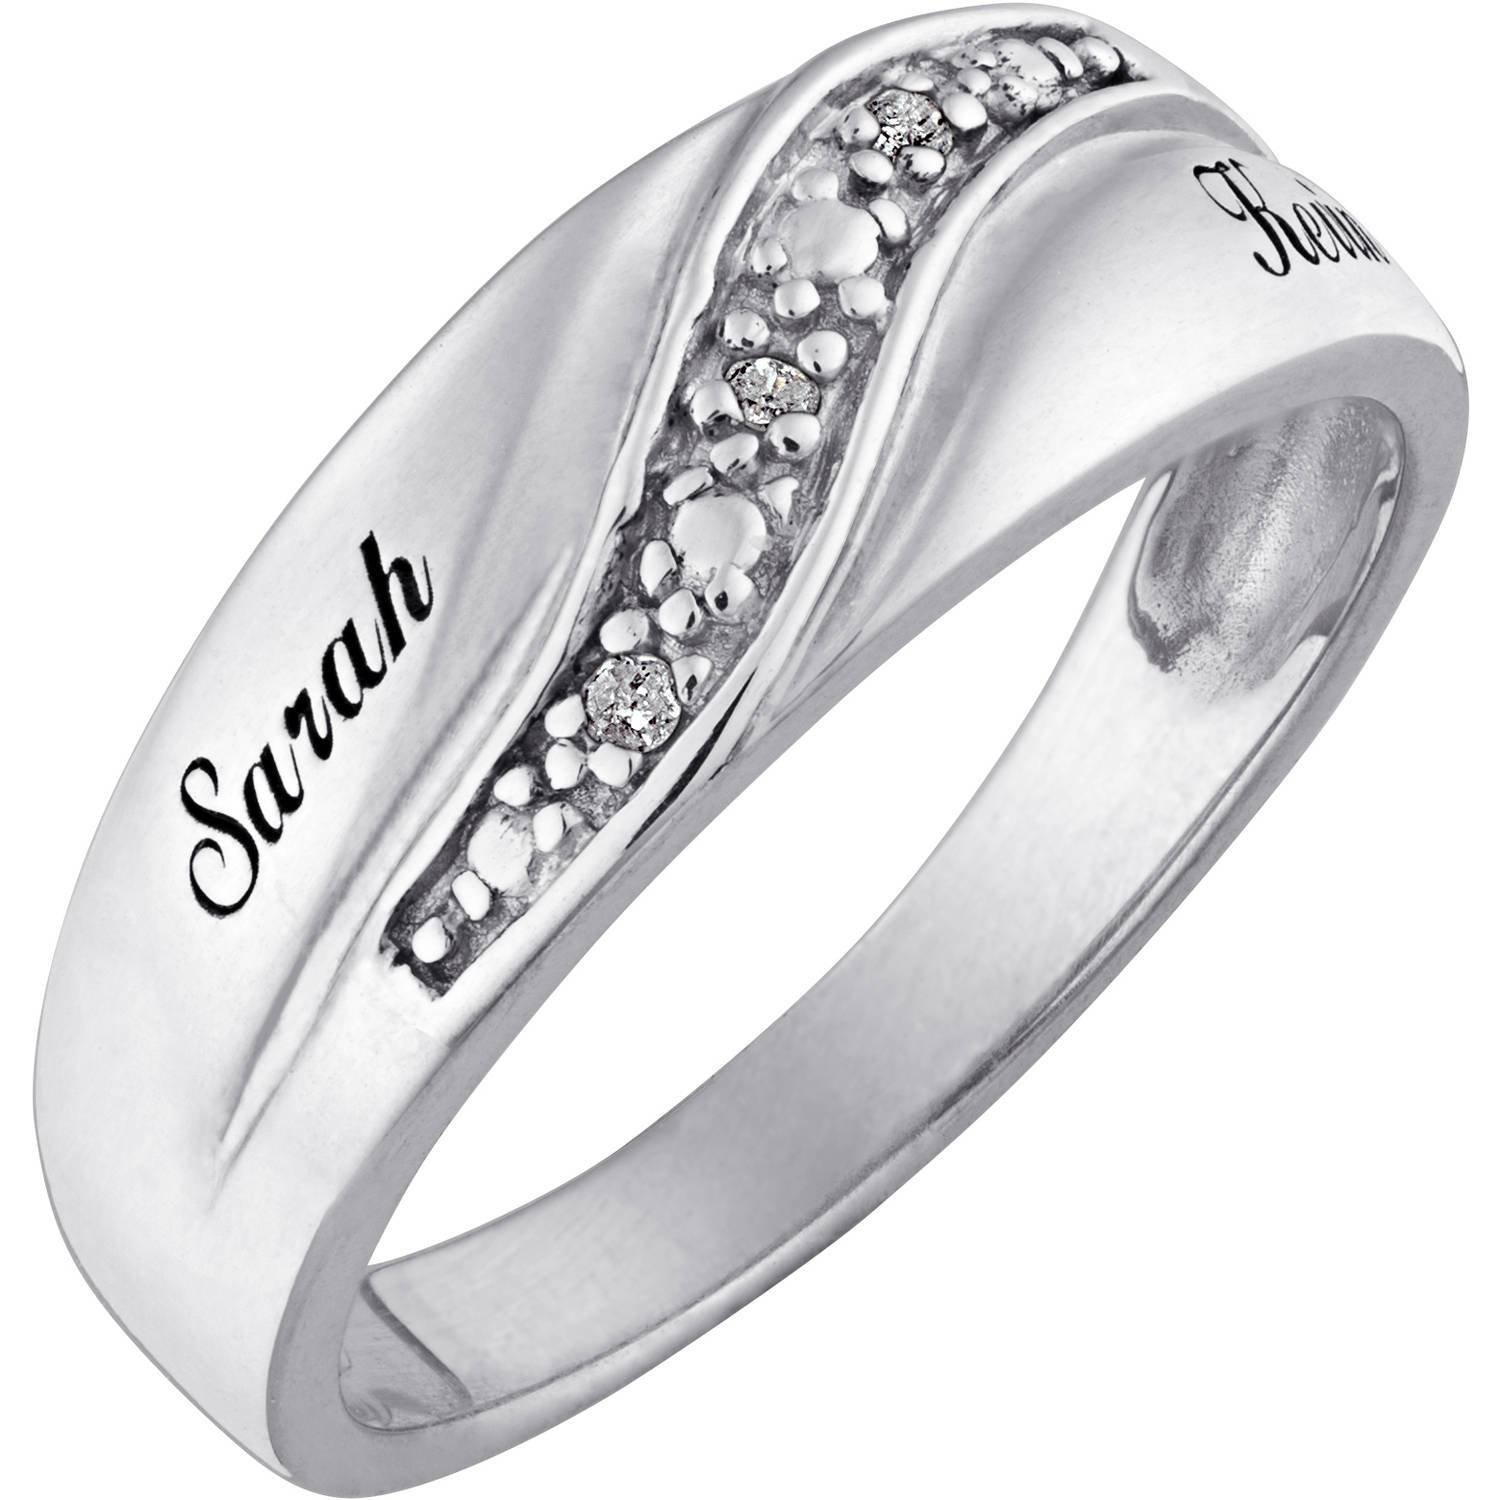 Personalized Sterling Silver Mens Diamond Accent Name Wedding Band Throughout Walmart Men's Wedding Bands (View 13 of 15)